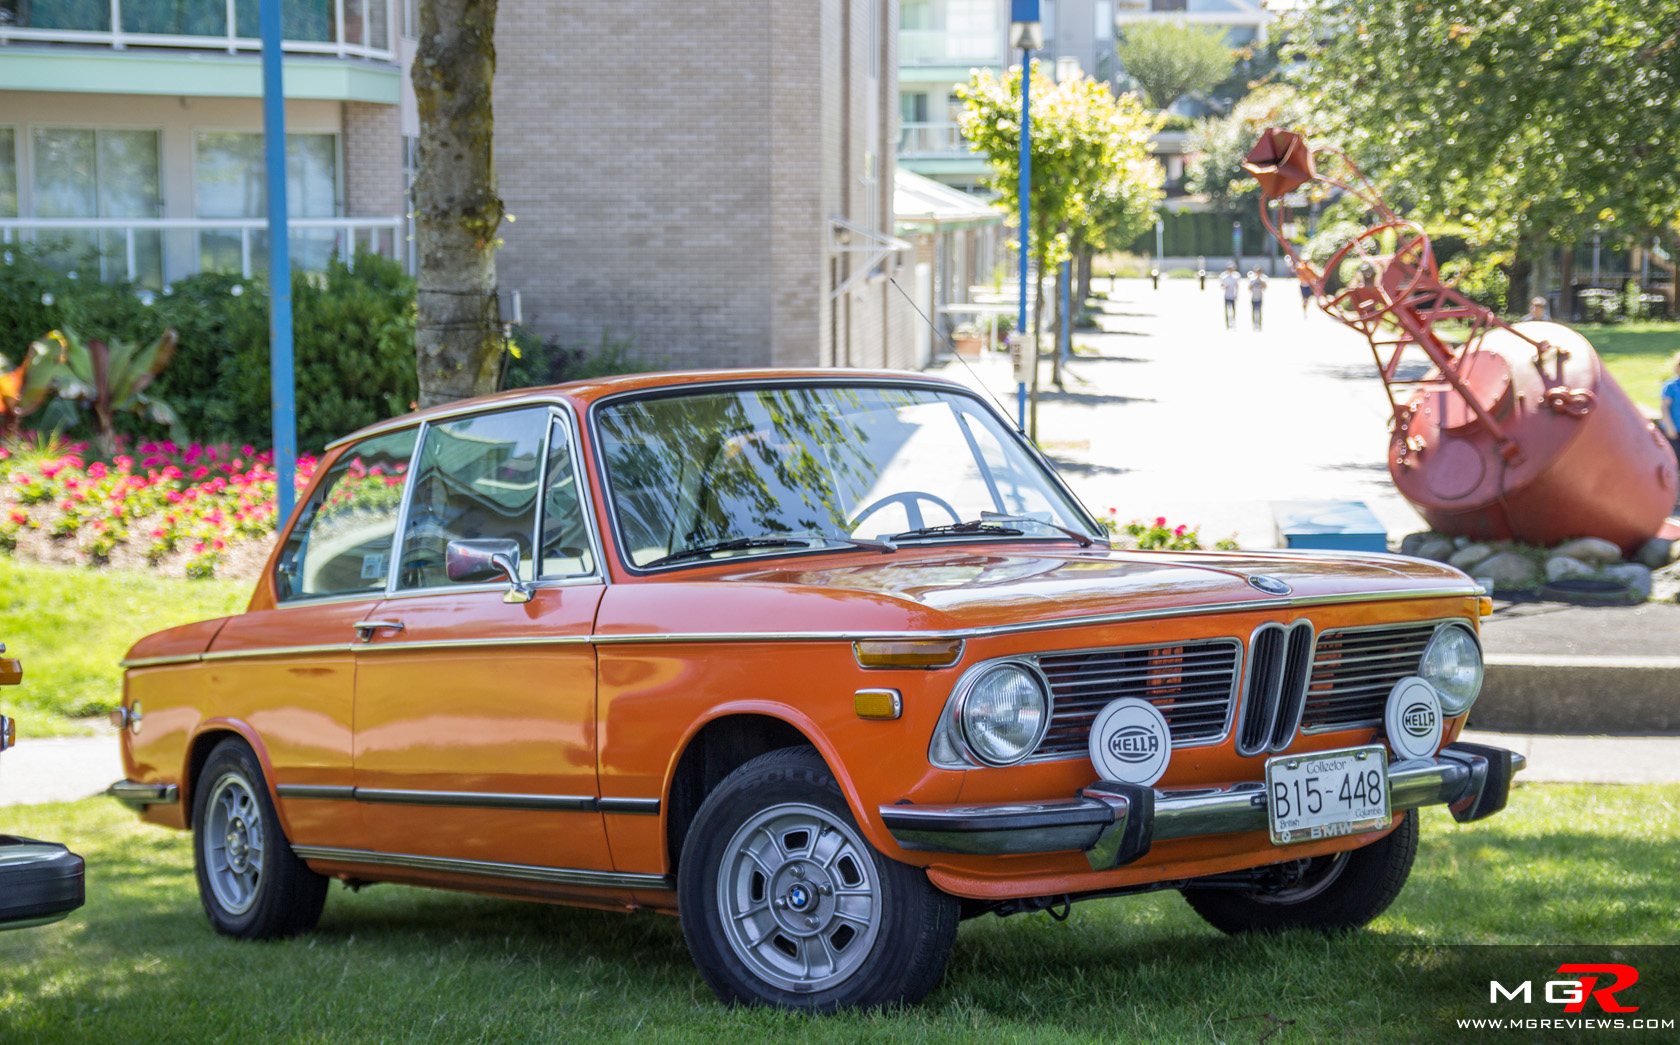 Bmw North Vancouver >> Photos: 2016 German Car Festival – M.G.Reviews